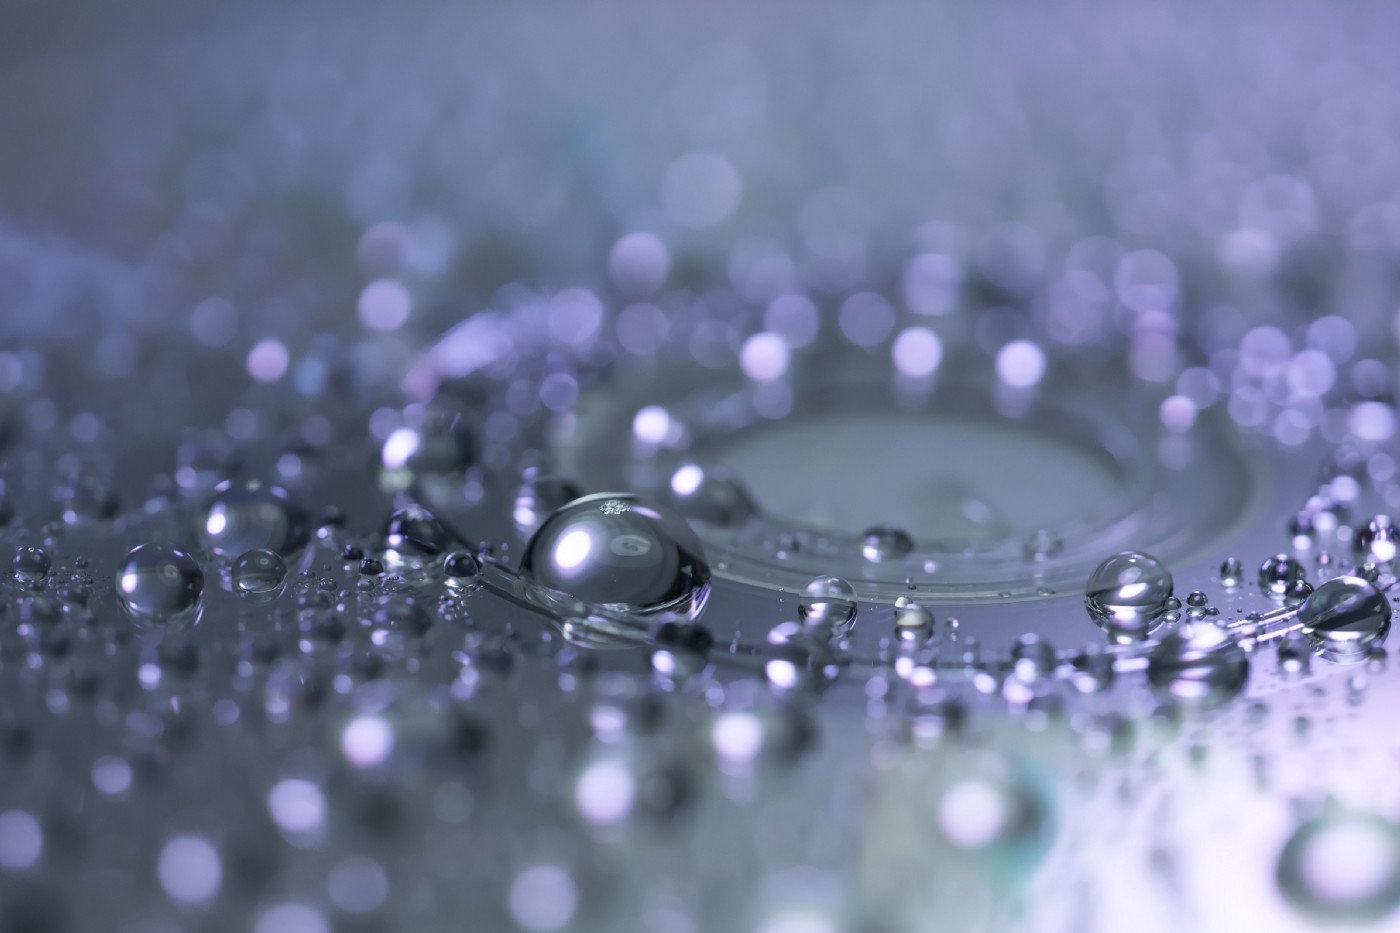 Shiny water droplets rest on a clear surface.